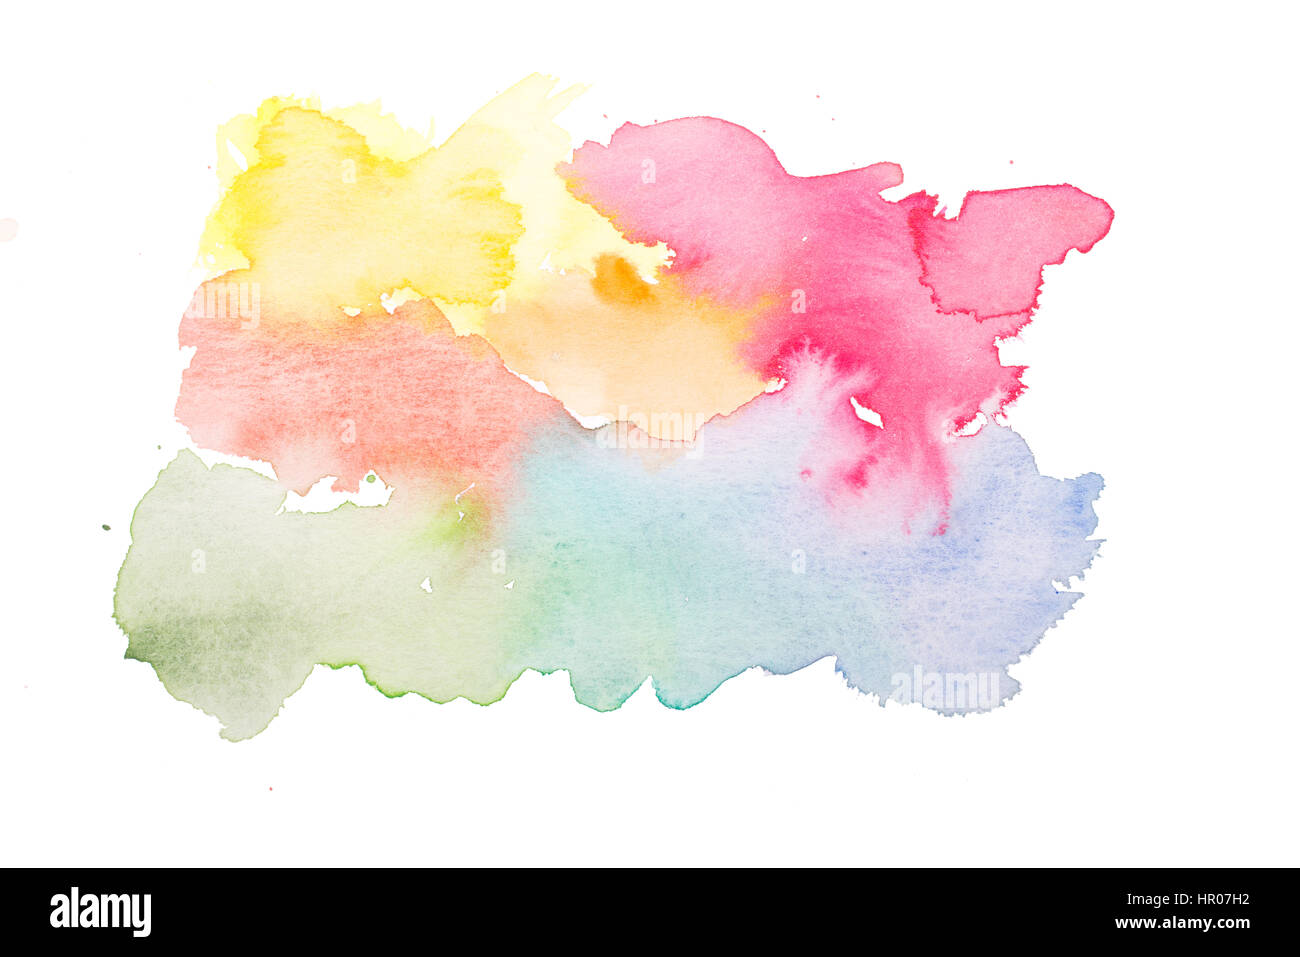 Lucent watercolor glaze of colorful colors yellow, orange, red, blue, green - Stock Image